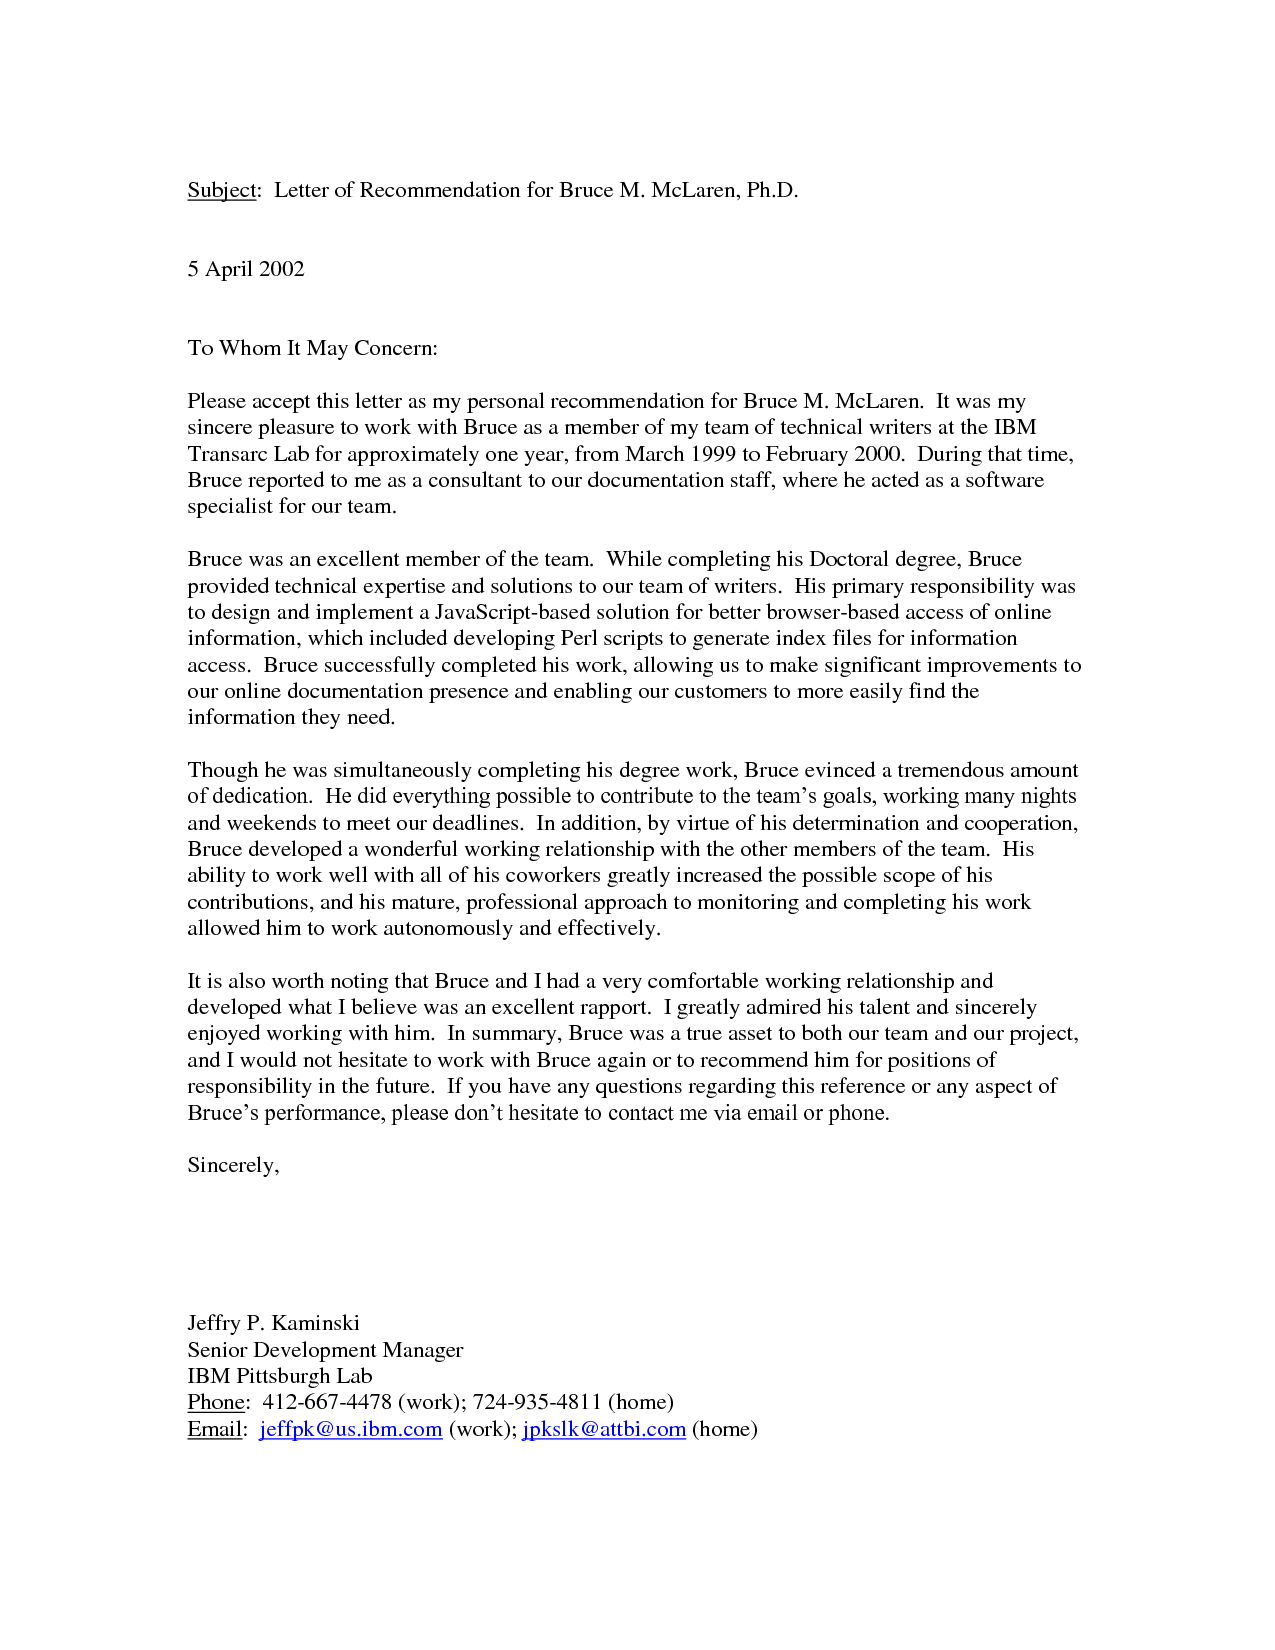 Personal Reference Letter Of Of